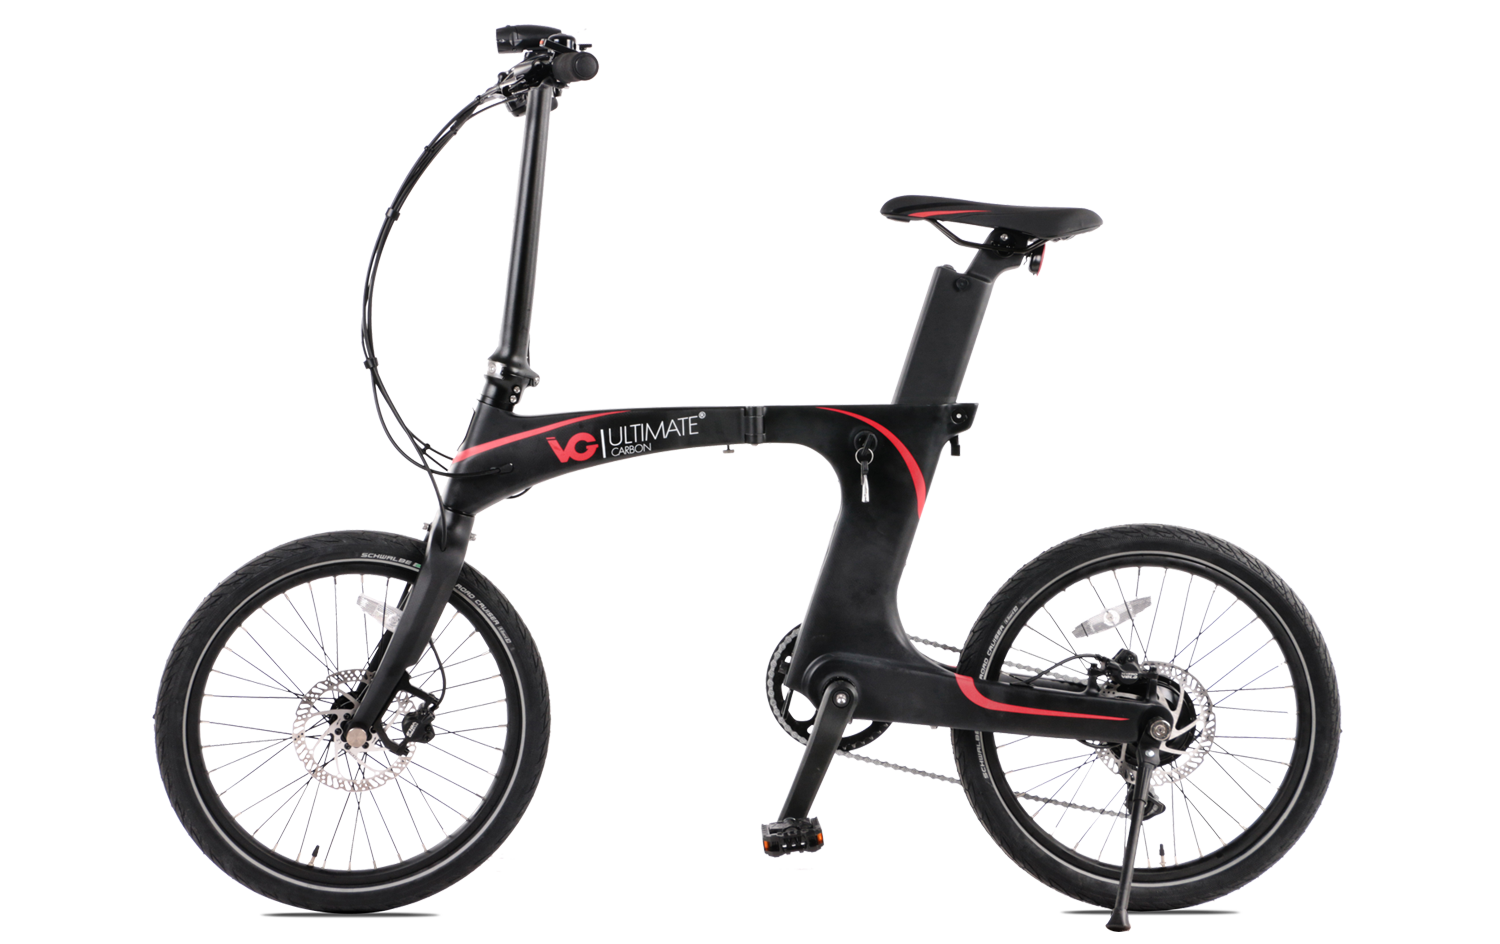 https://w8w5m3f8.stackpathcdn.com/18342/velo-electrique-pliant-ultimate-carbon-378wh.jpg